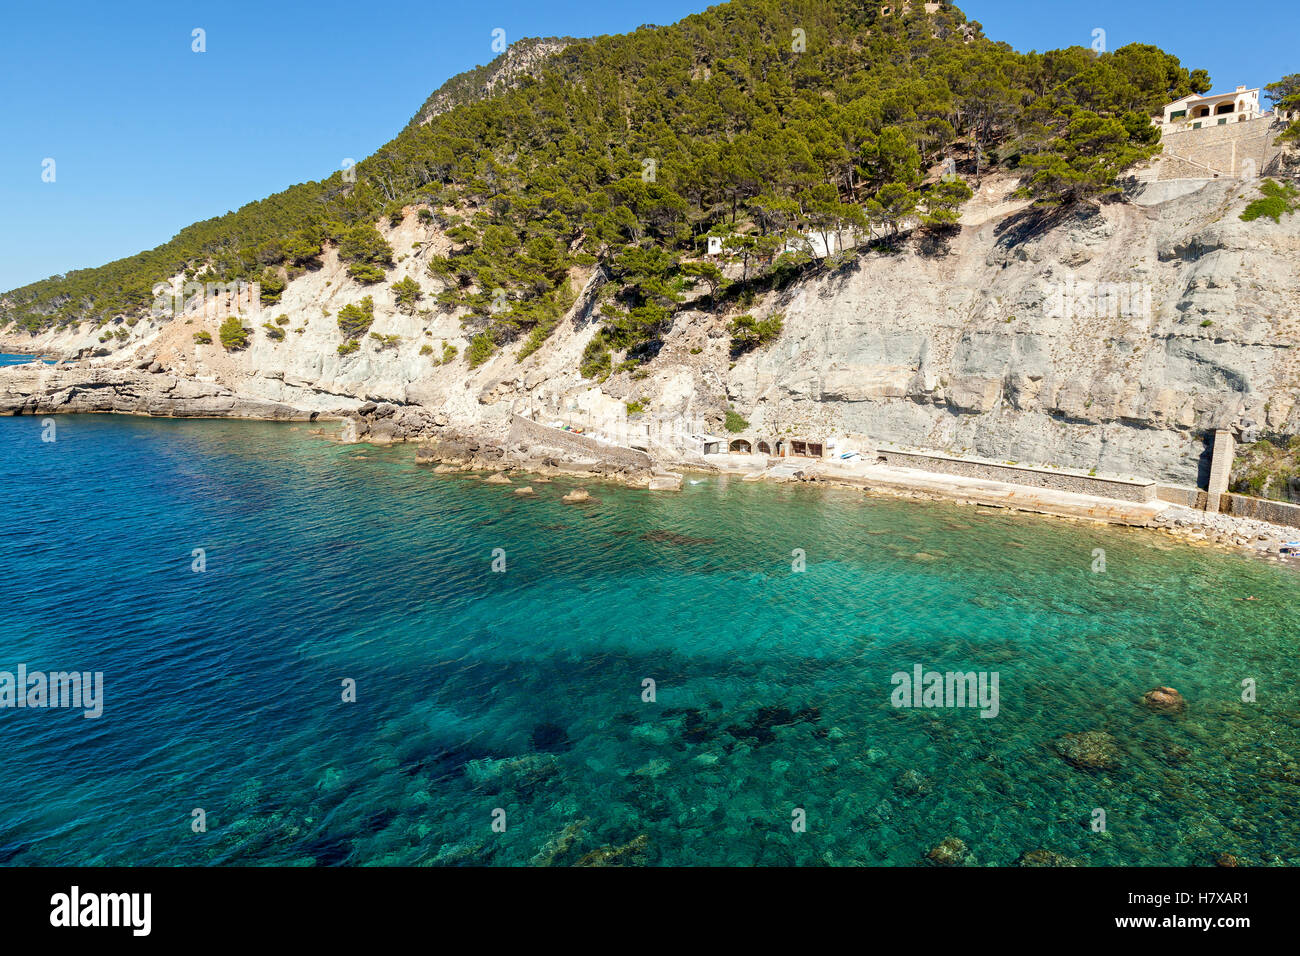 Azure Bay. Azure bay with crystal clear water through which can be seen the rocky bottom On top of the mountain - Stock Image